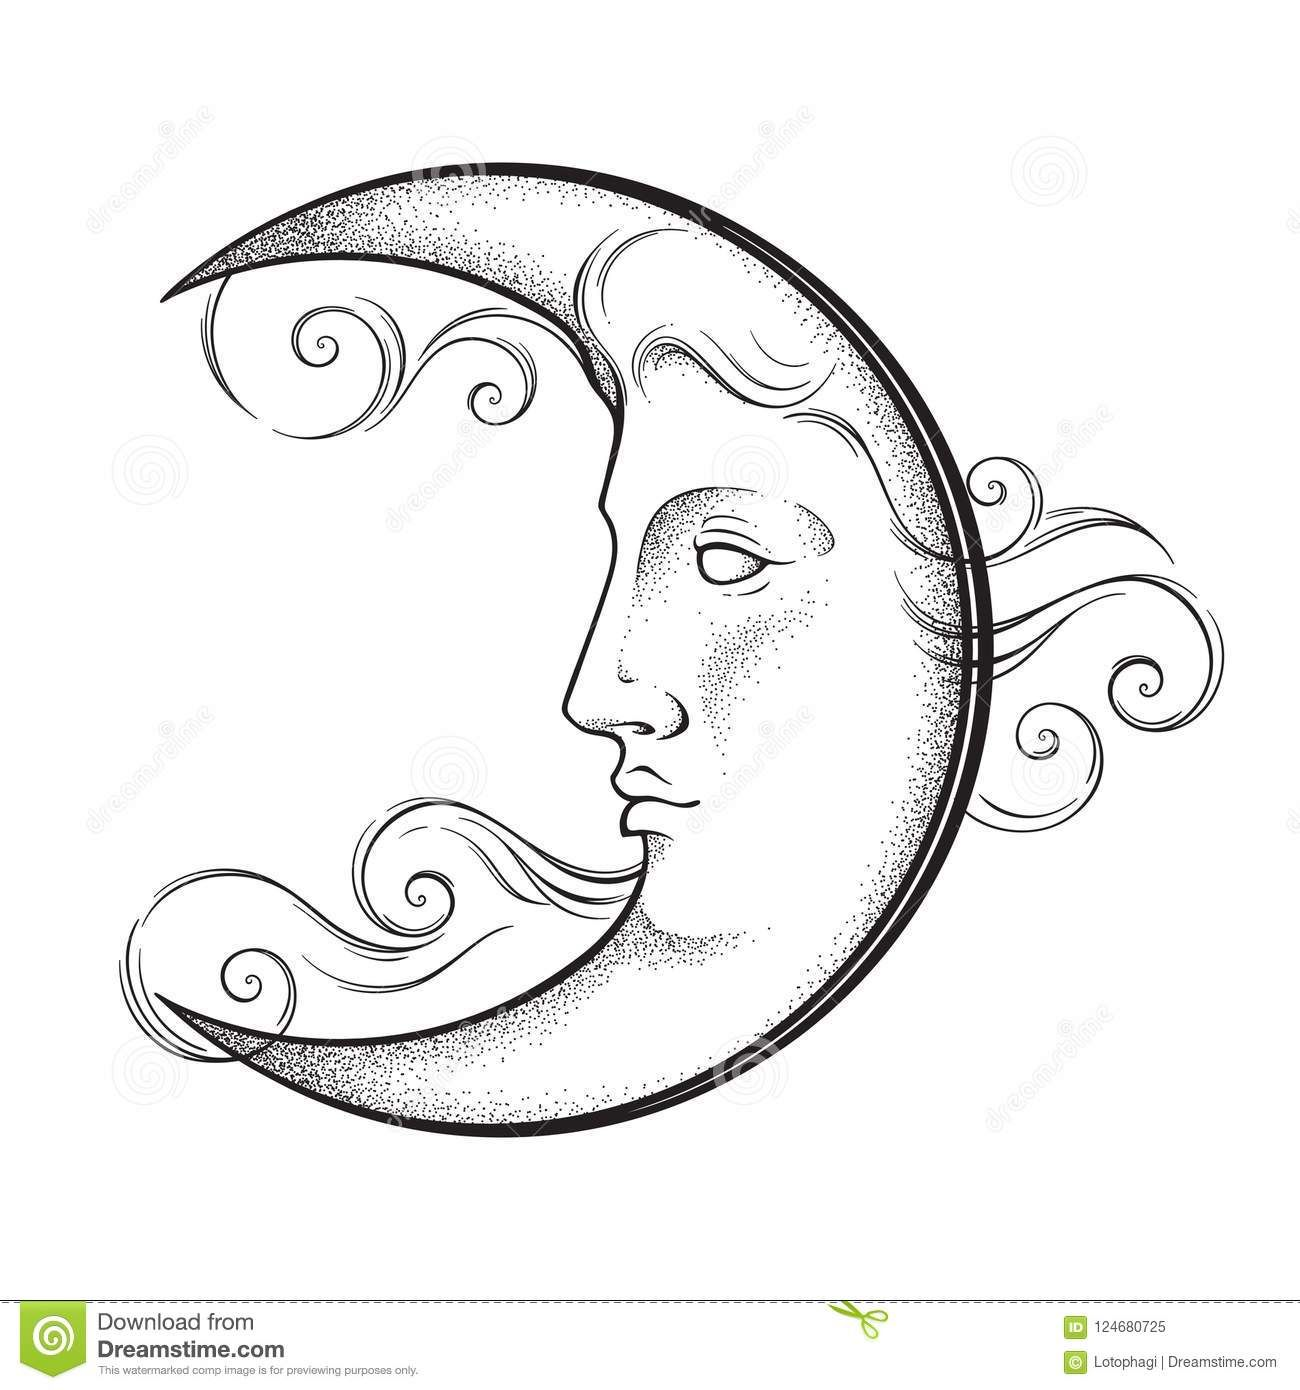 Crescent Moon With Face In Antique Style Hand Drawn Line Art And Moon Tattoo Crescent Moon Art Moon Tattoo Designs